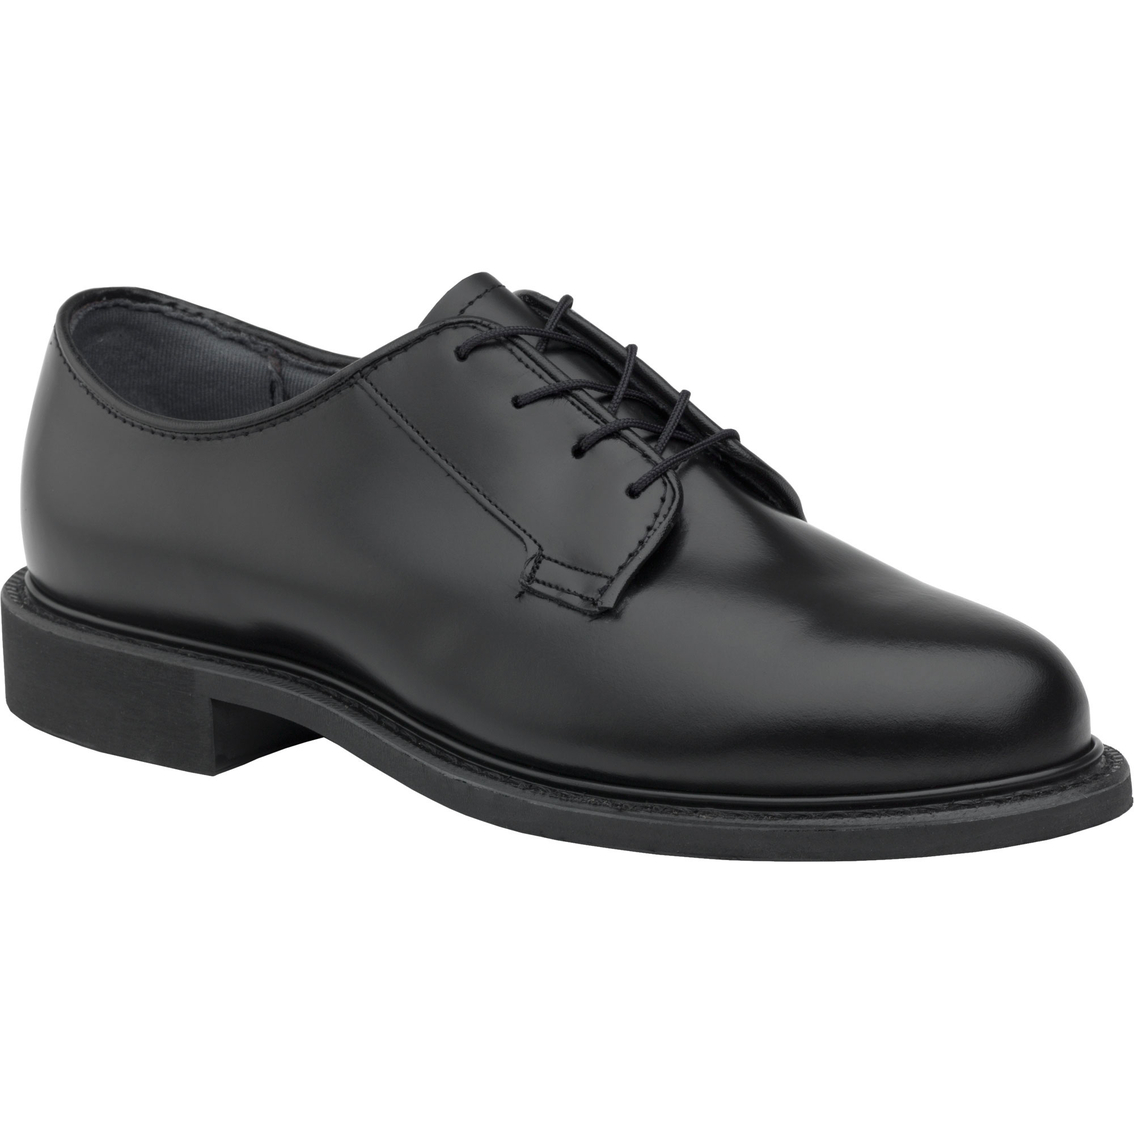 All Leather Military Dress Shoes